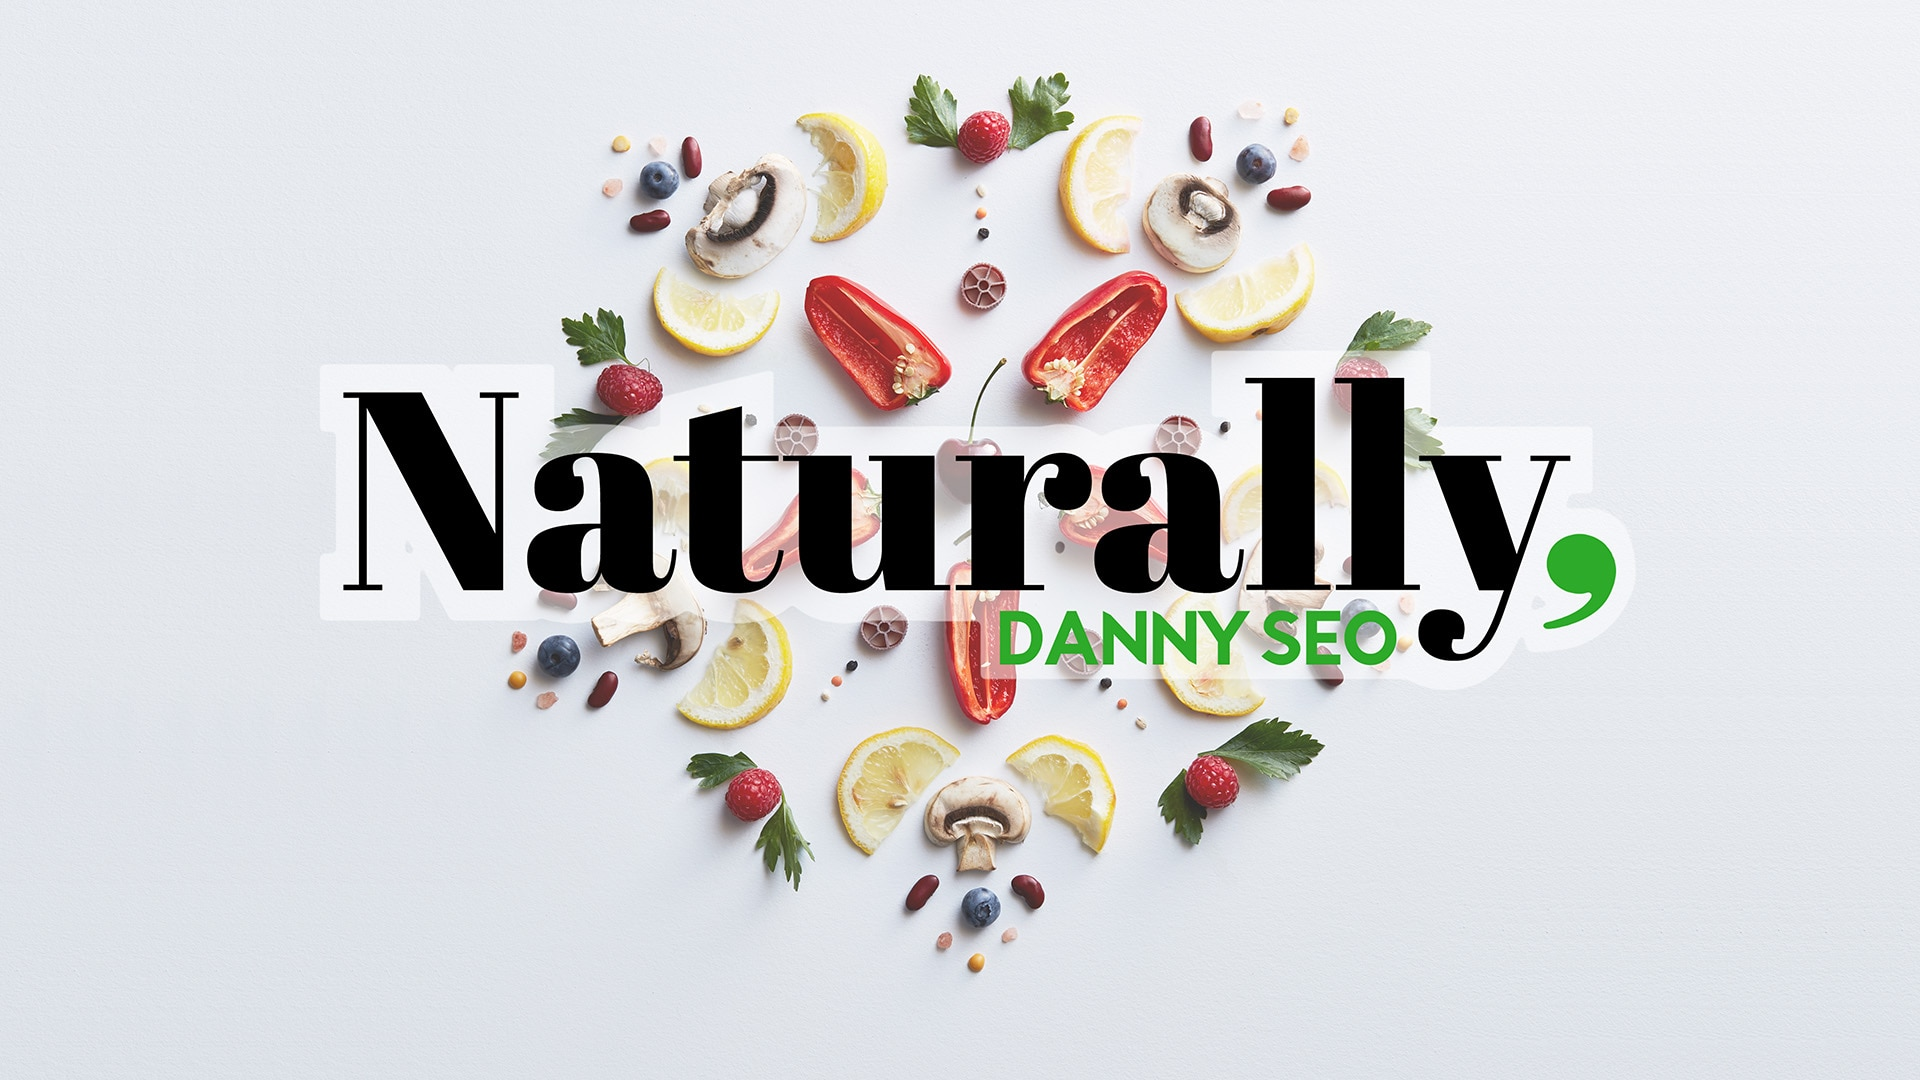 Naturally, Danny Seo on FREECABLE TV